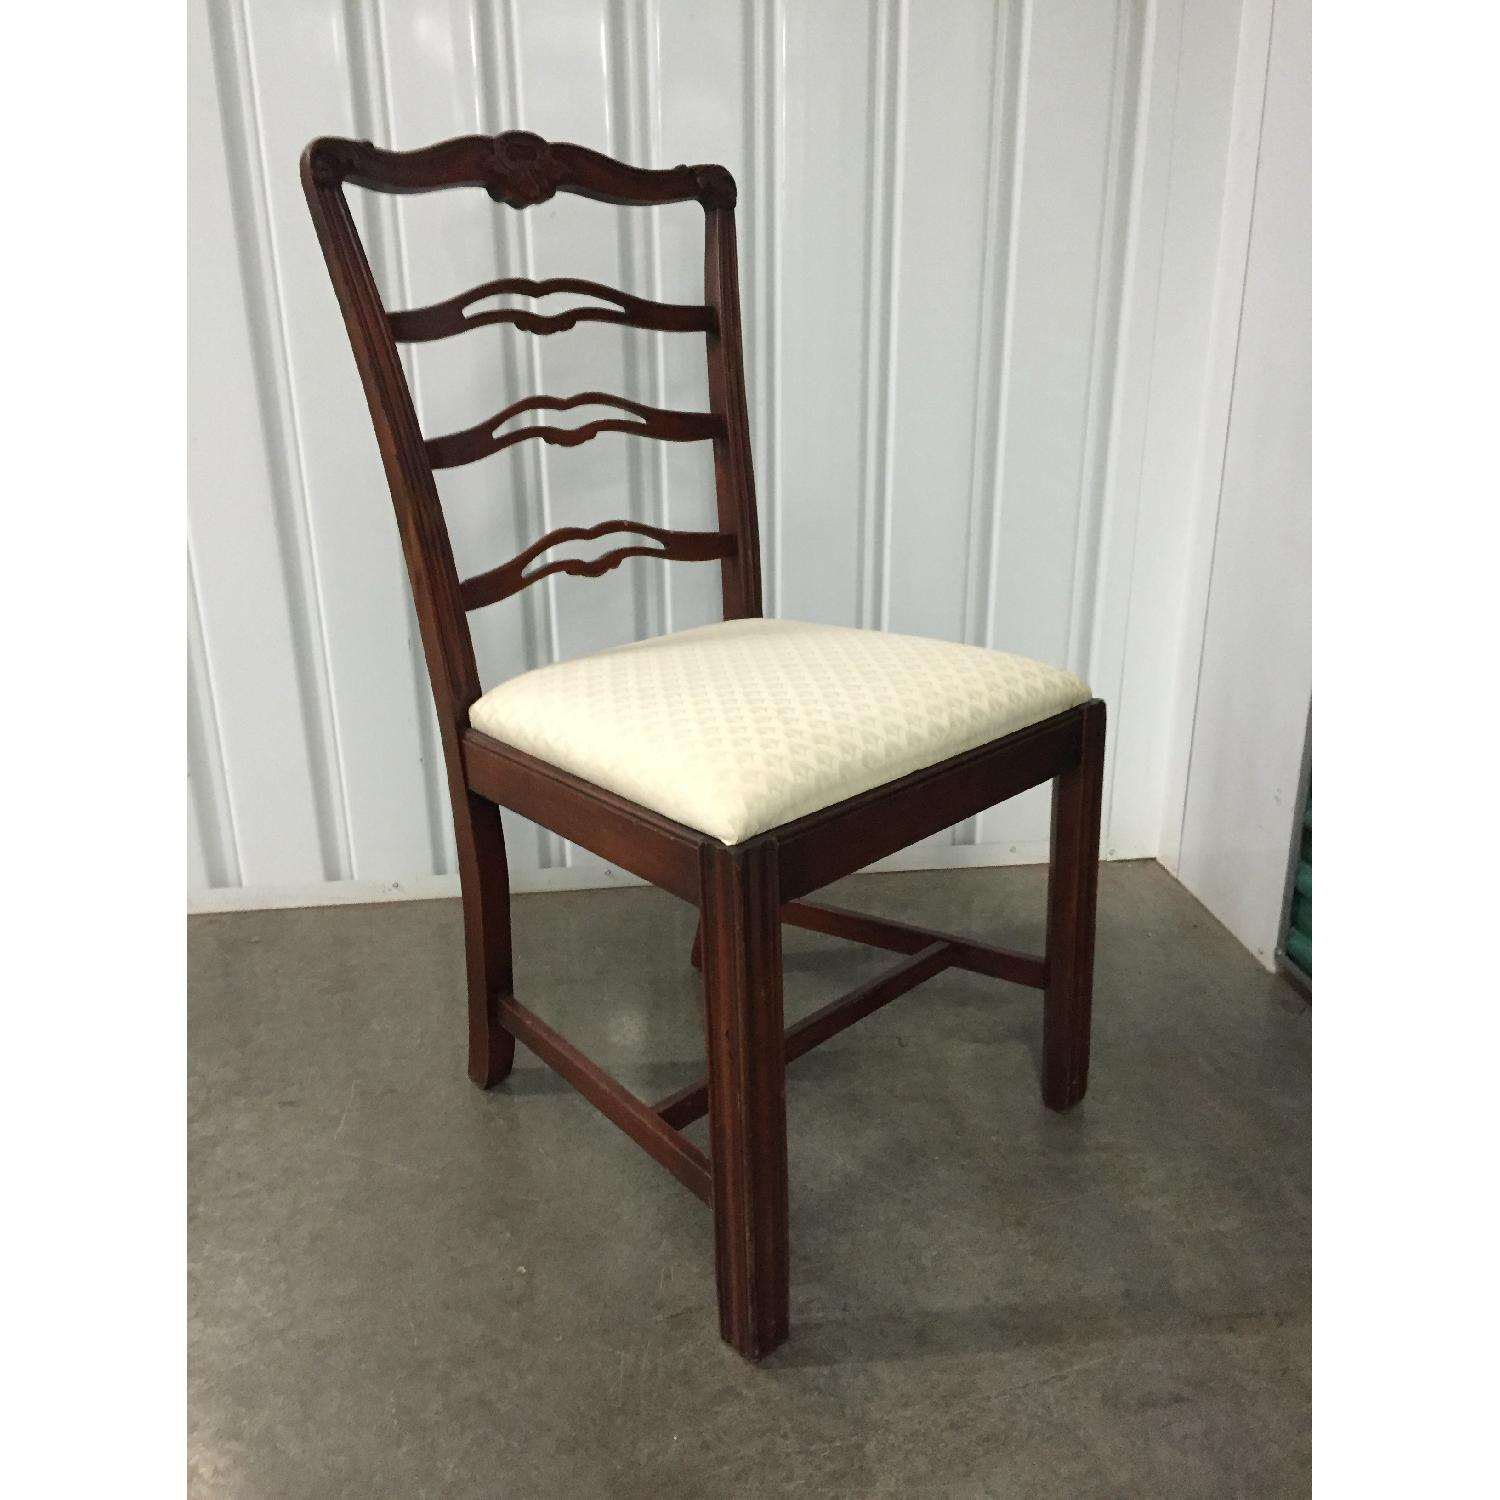 Antique Dining Room Chairs w/ Cherry Wood Frames & Custom Seat Upholstery - Set of 5 - image-2